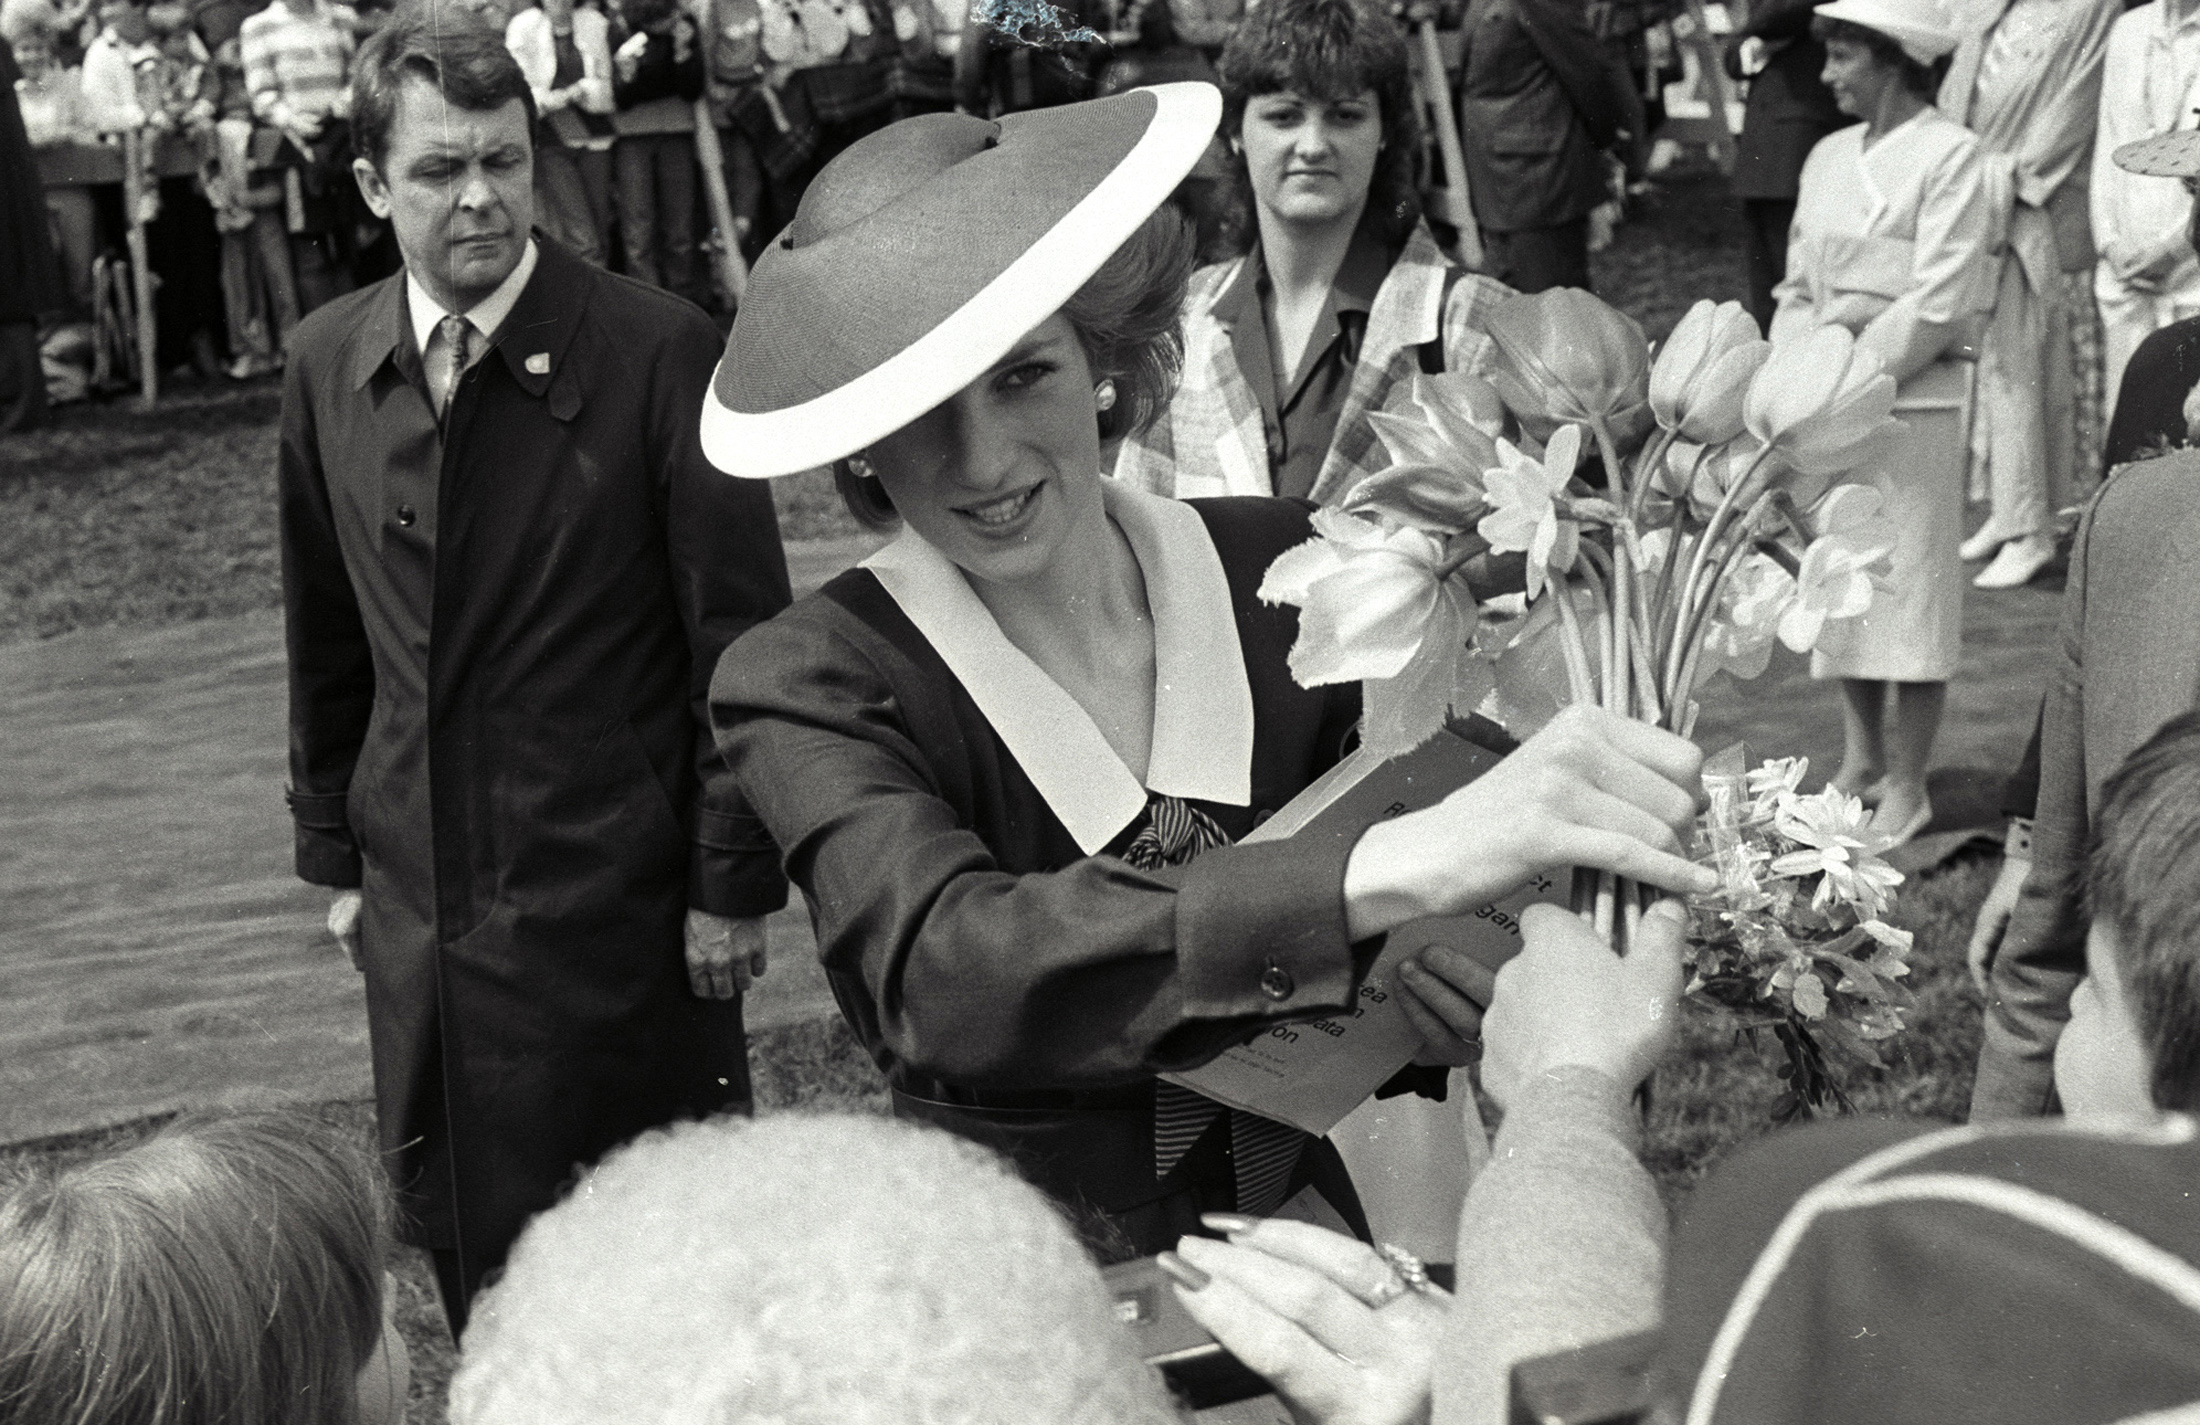 Princess Diana accepts a bouquet of flowers during a walk in Kelowna, Canada, on May 3, 1986. Photo by Gary Hershorn/Reuters